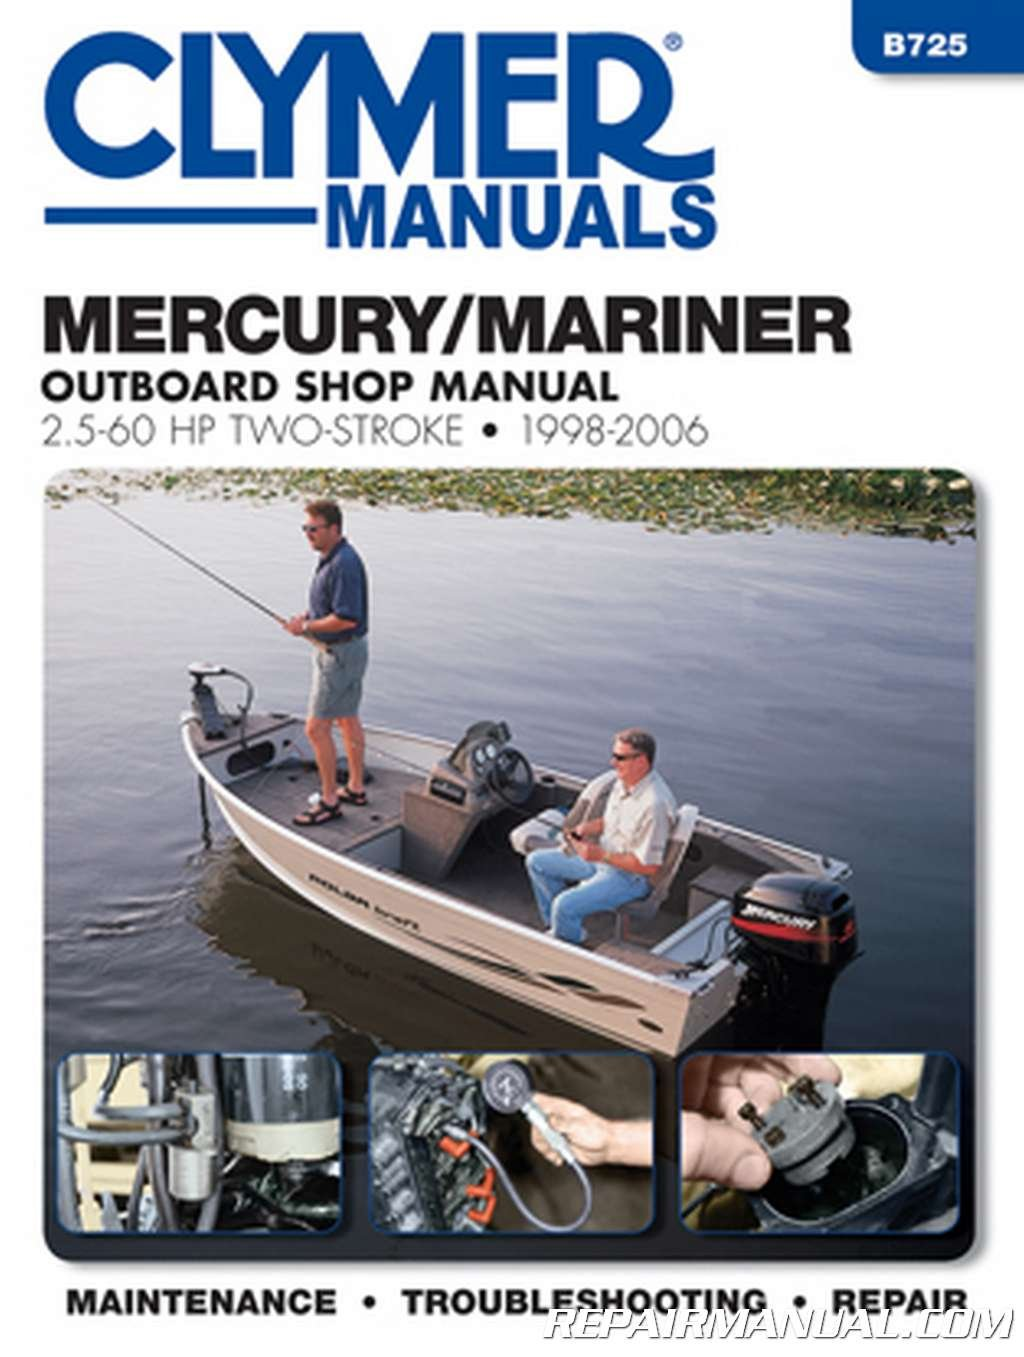 B725 1998-2006 Mercury-Mariner 25hp ? 60hp Outboard Boat Engine Repair  Manual: Manufacturer: Amazon.com: Books